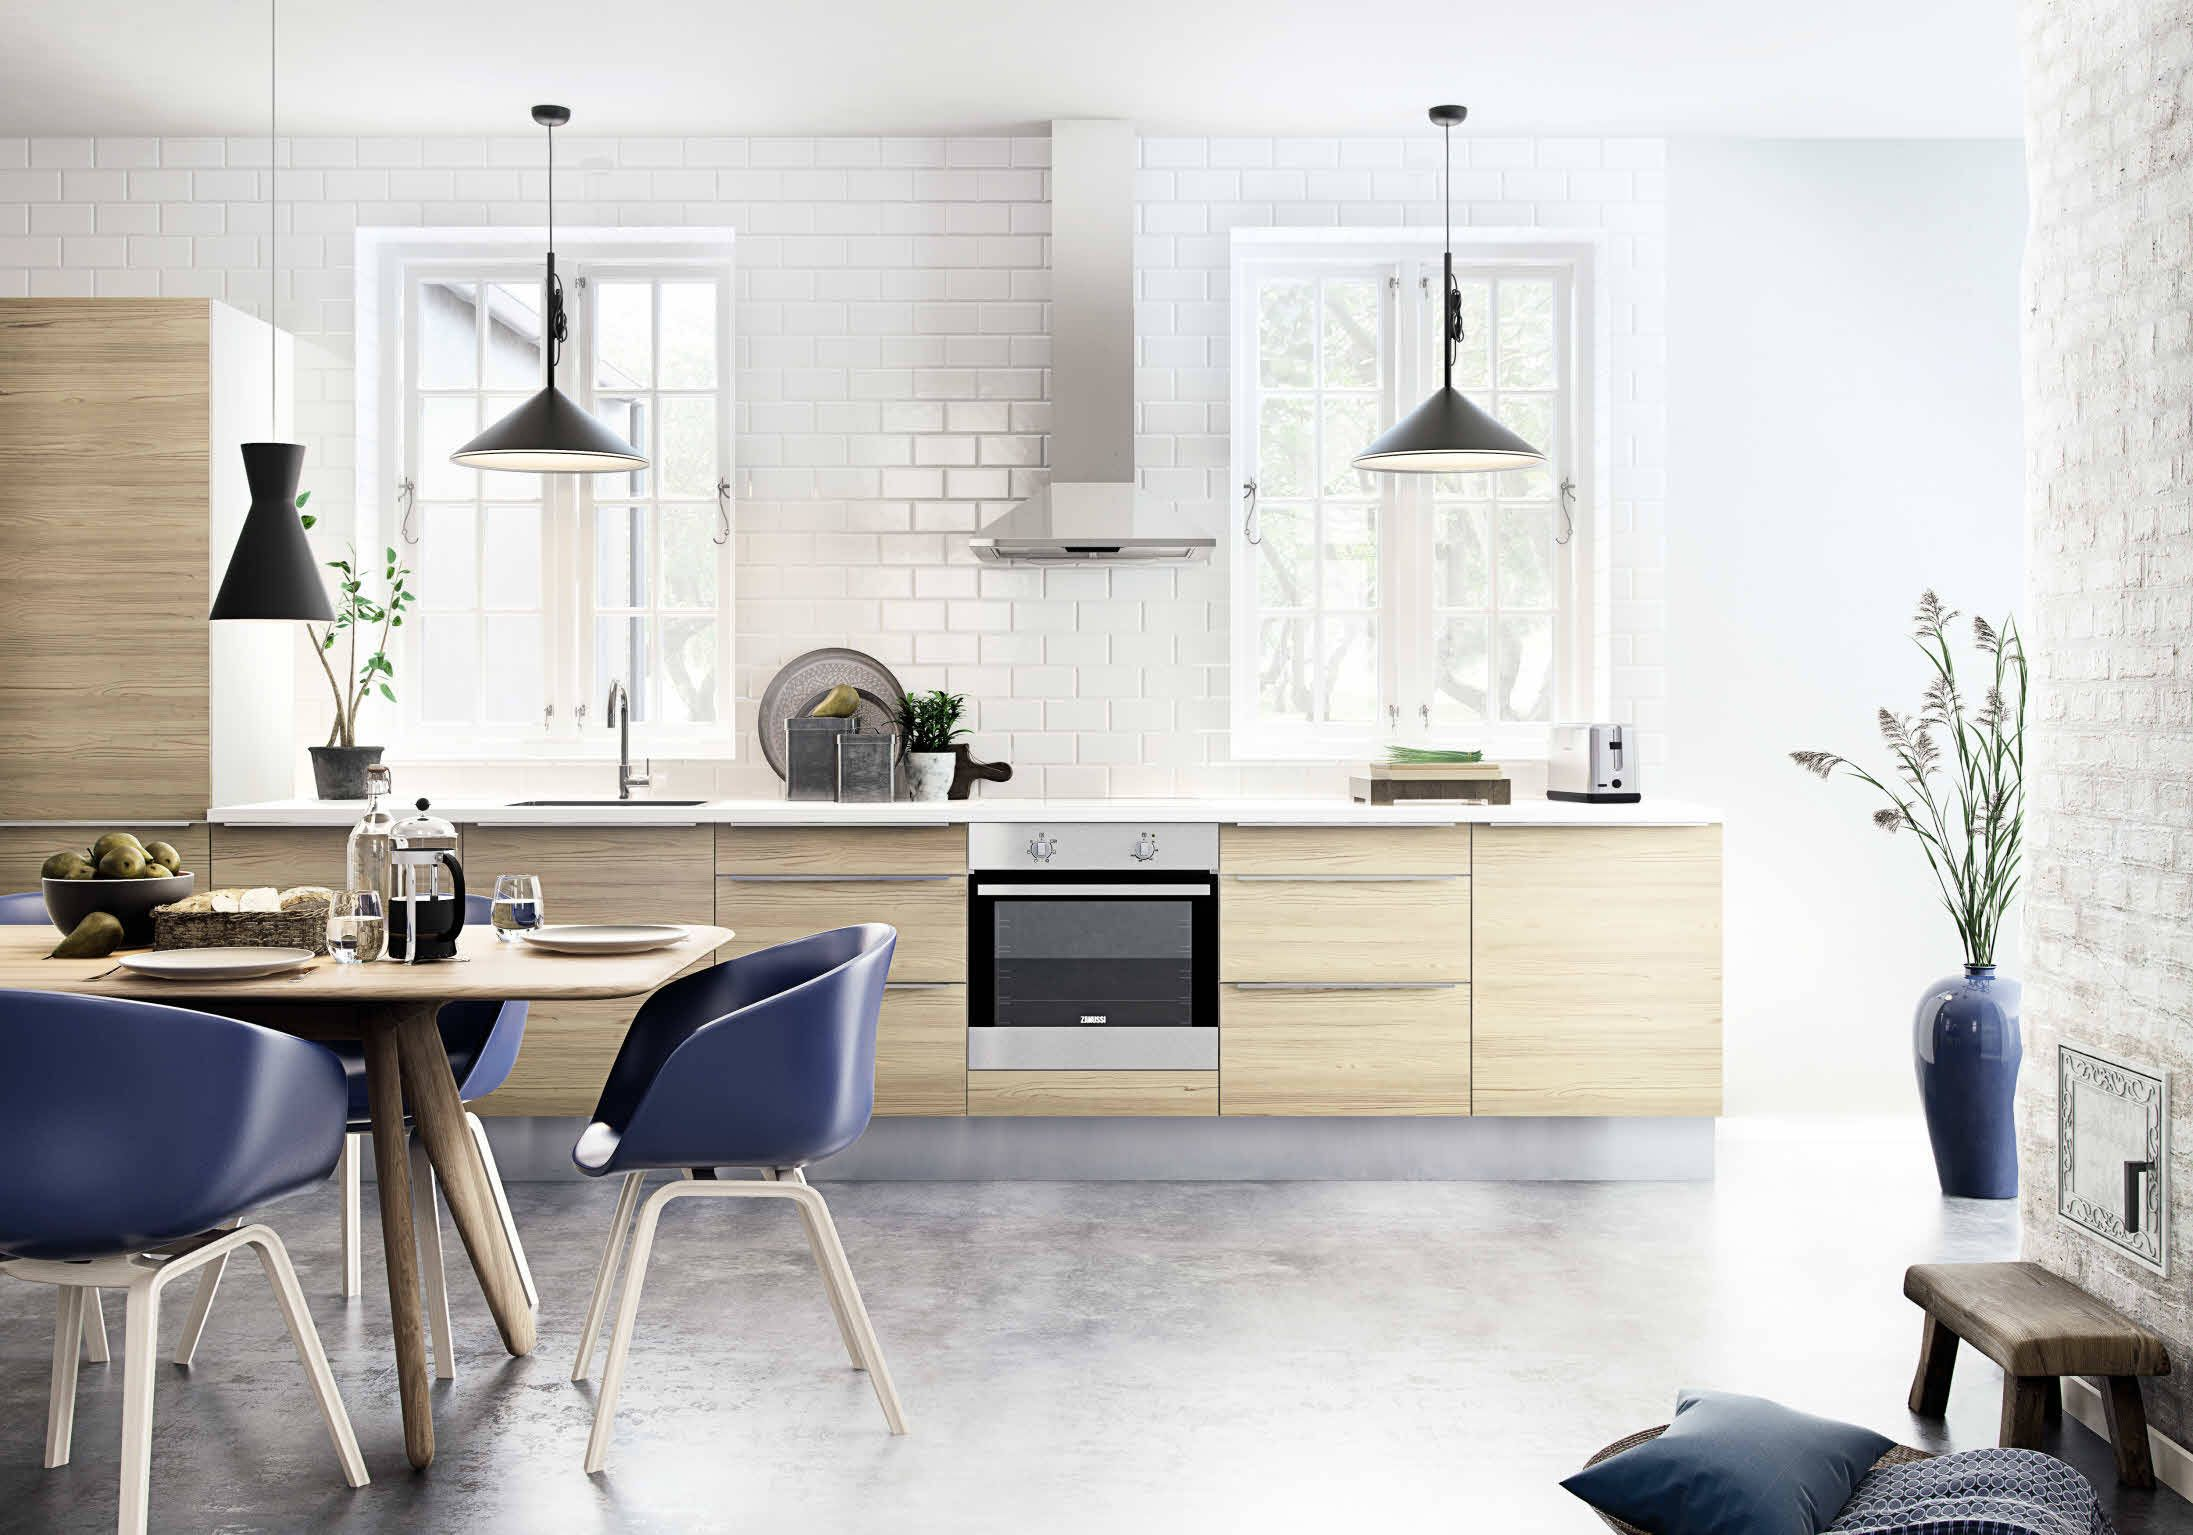 Kitchens and design on pinterest